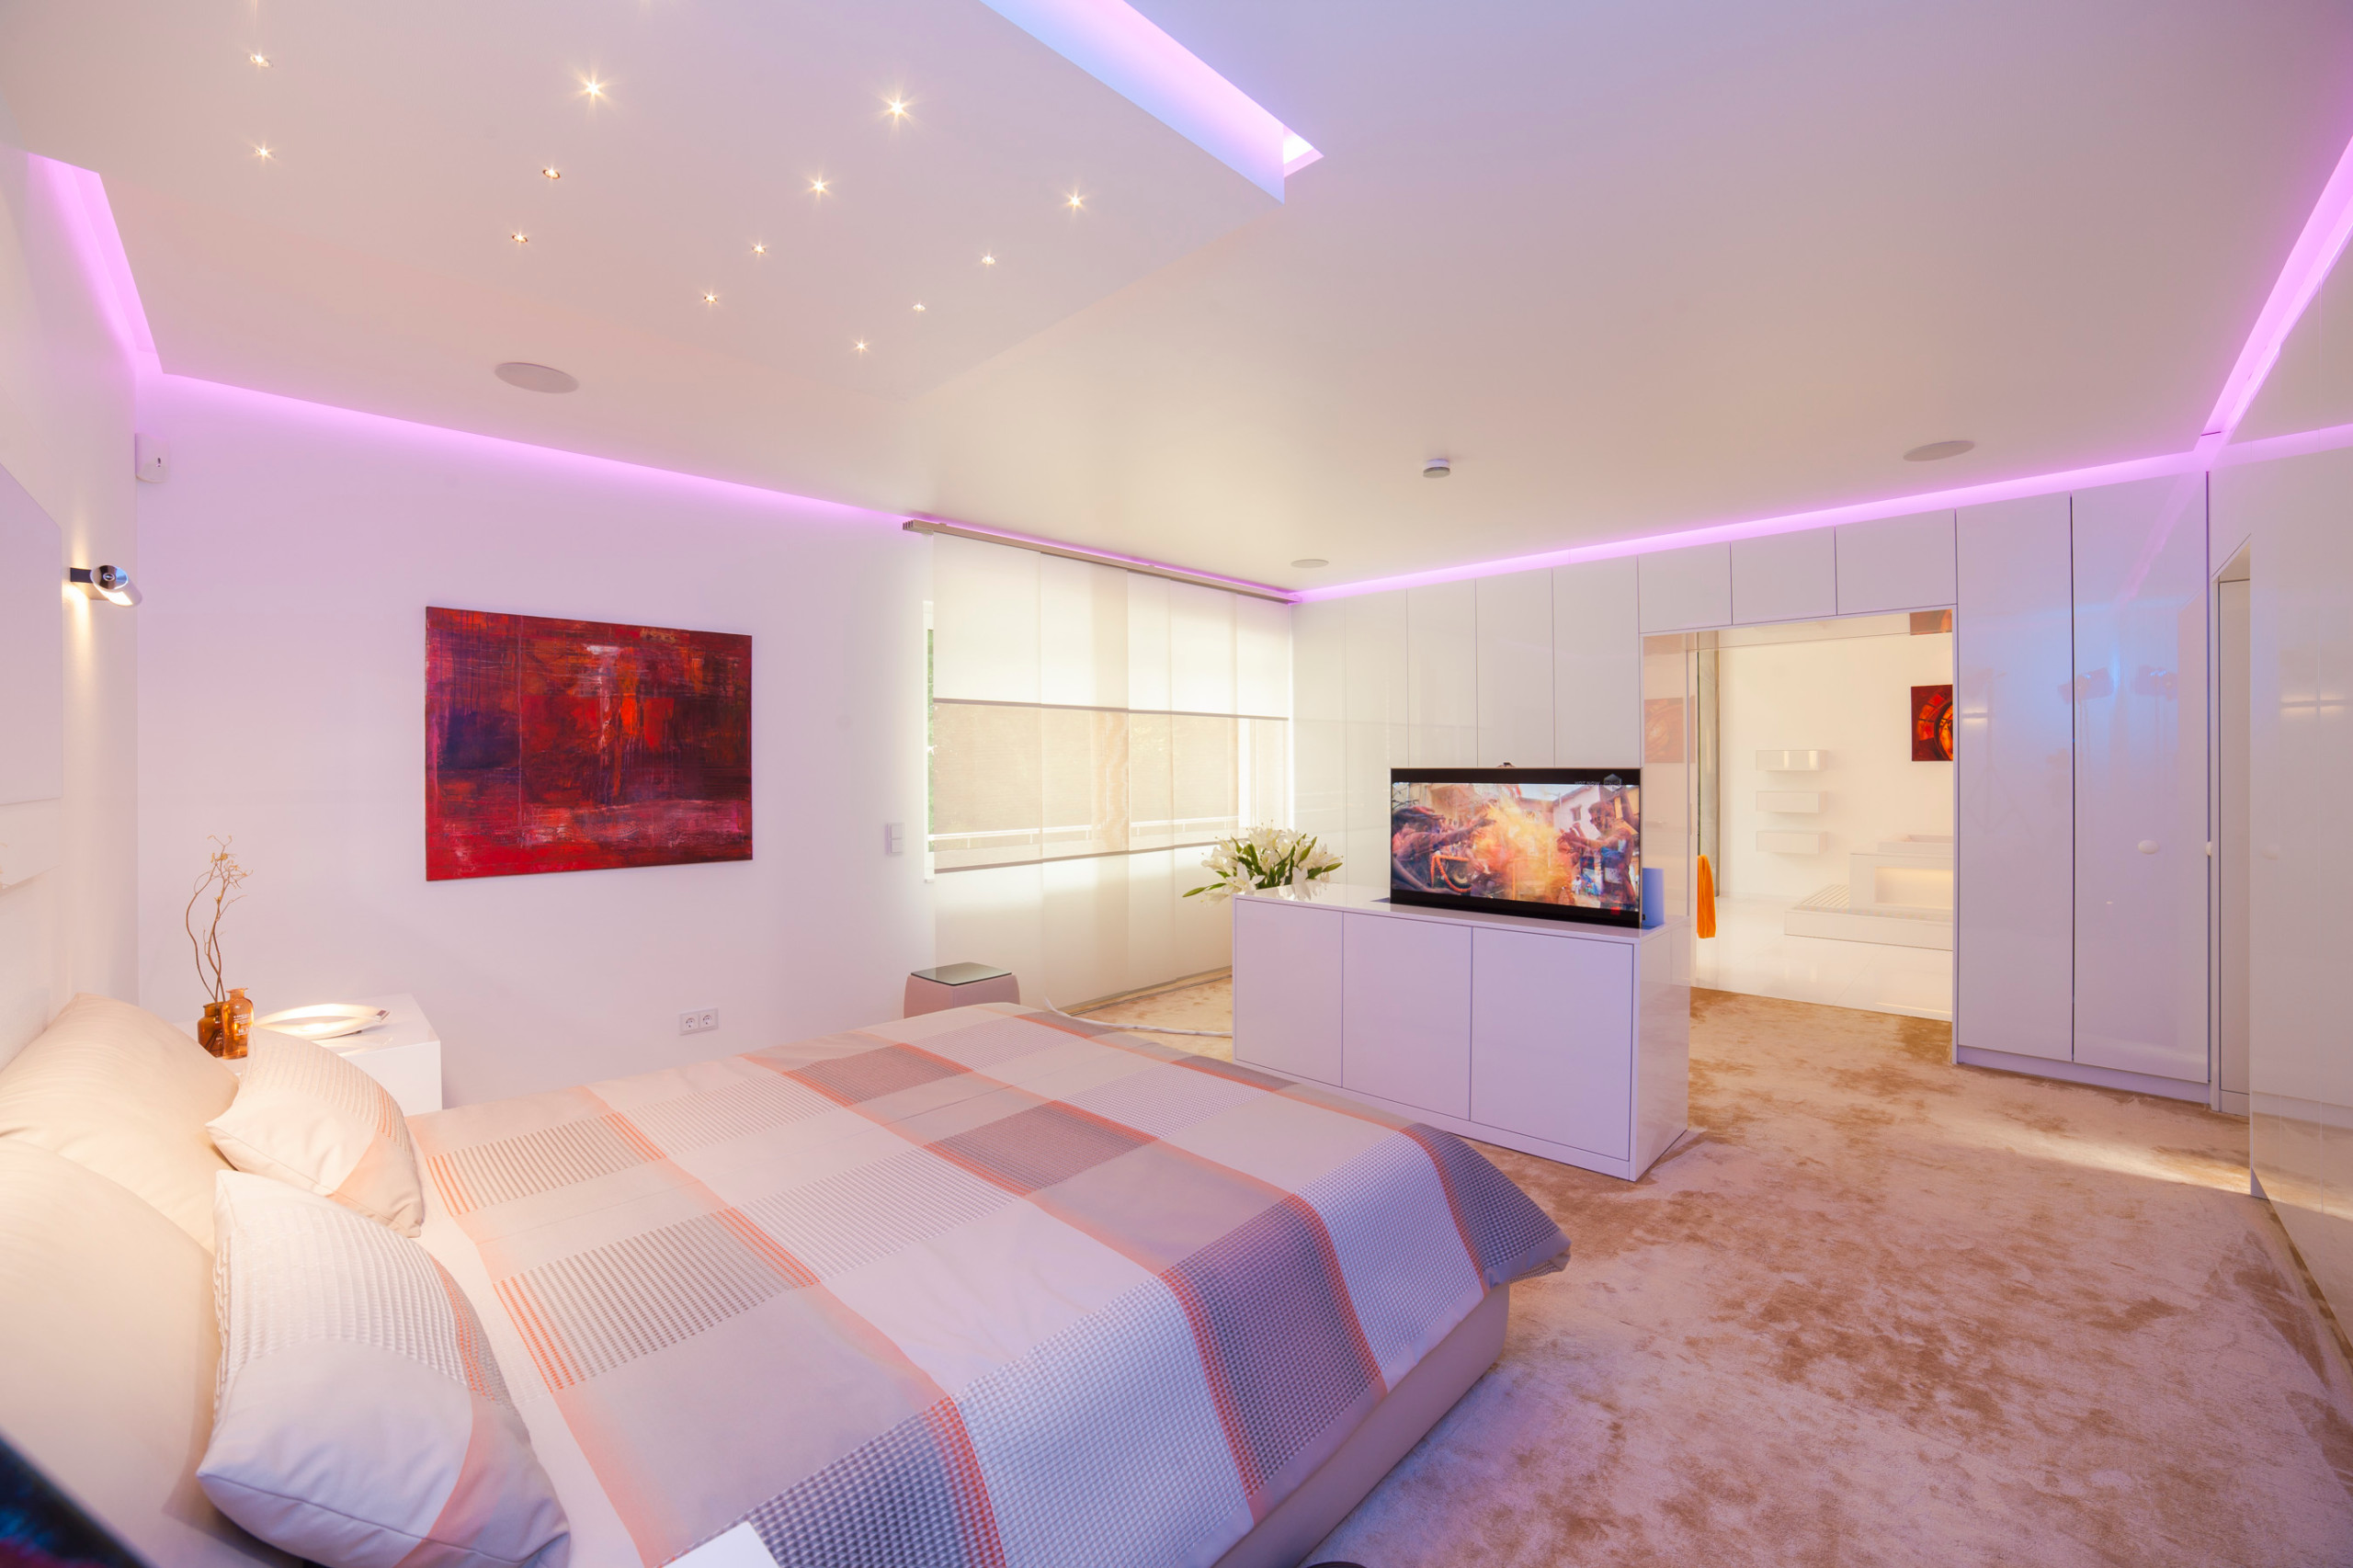 75 Beautiful Luxury Pink Bedroom Pictures Ideas February 2021 Houzz